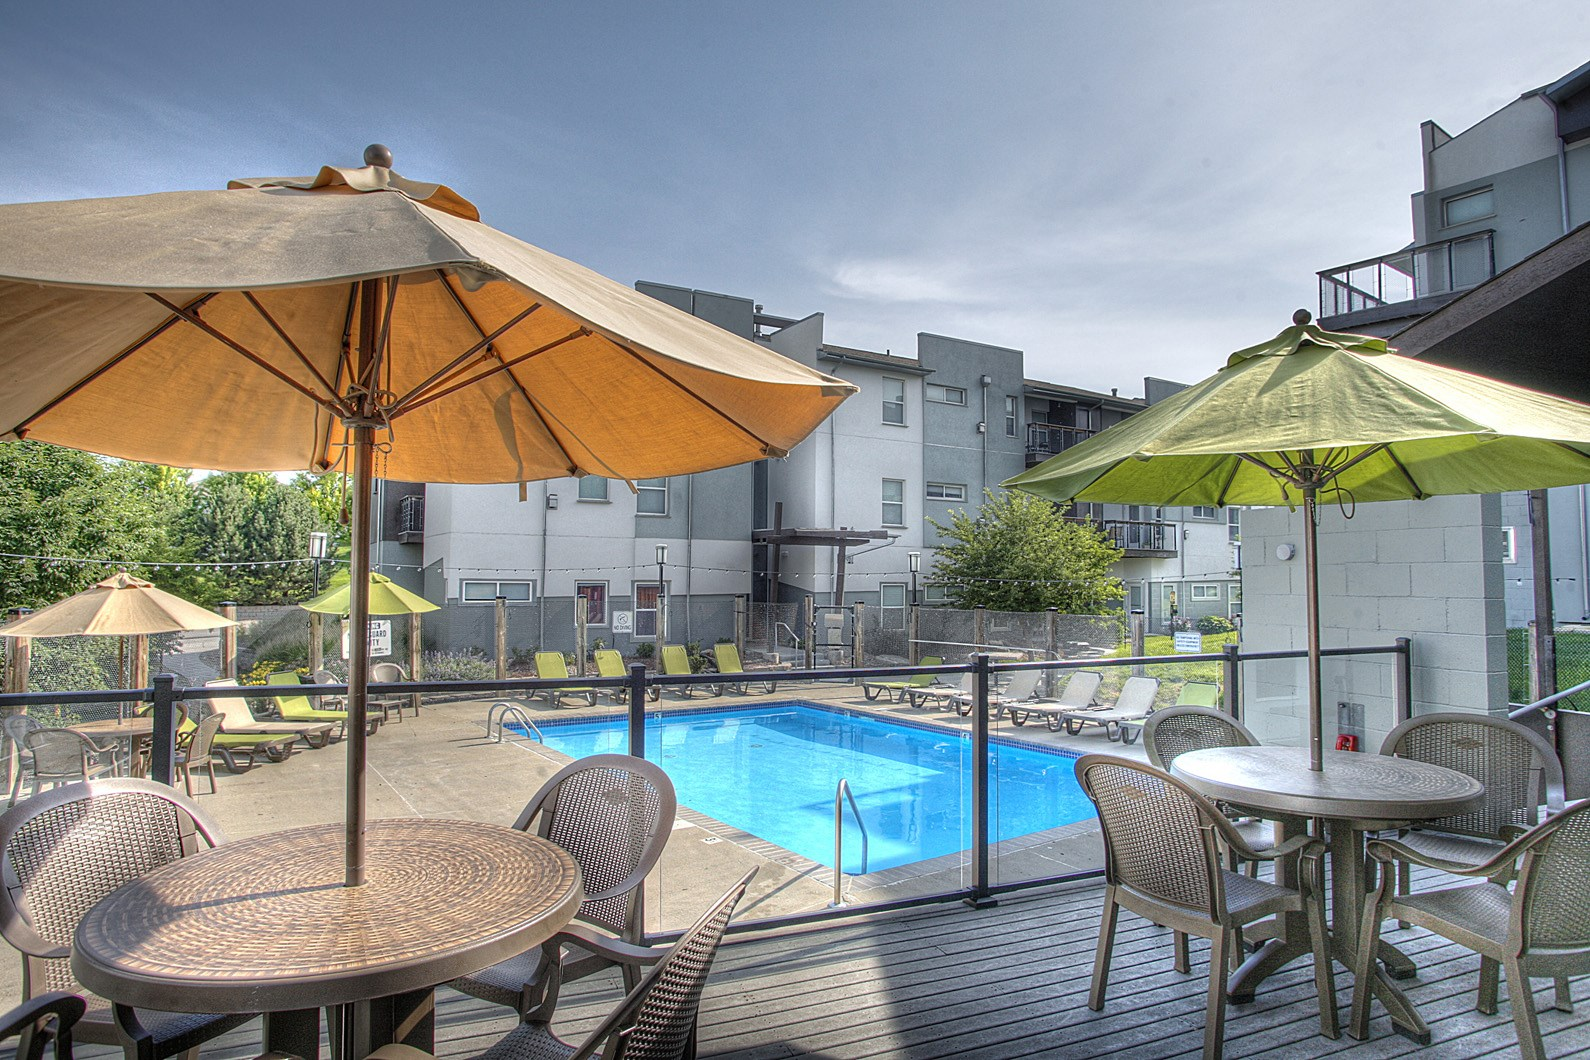 Poolside Umbrellas and Dining Tables at Briar Hills, Omaha